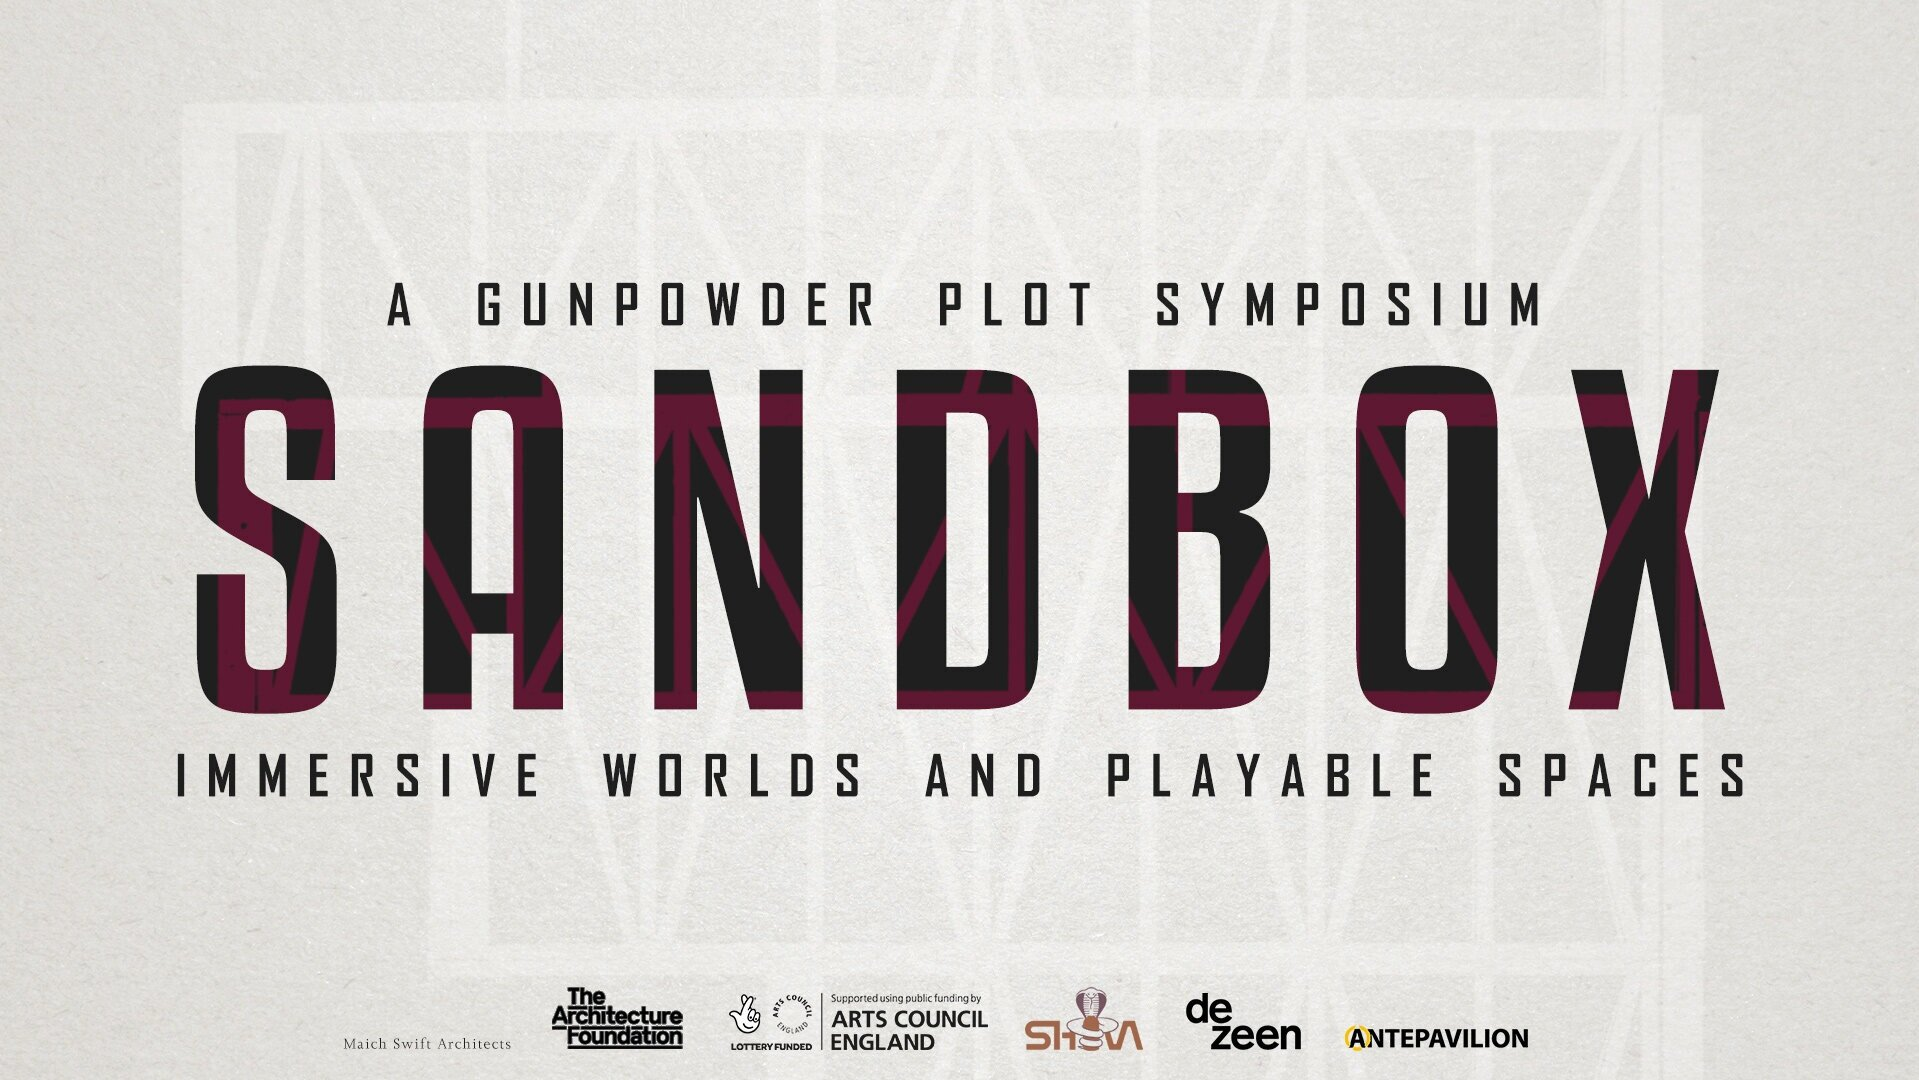 SANDBOX: Creating, Immersive Worlds and playable spaces - Rosemary Waugh gives an overview of the Gunpowder Plot symposium taking place at Potemkin Theatre